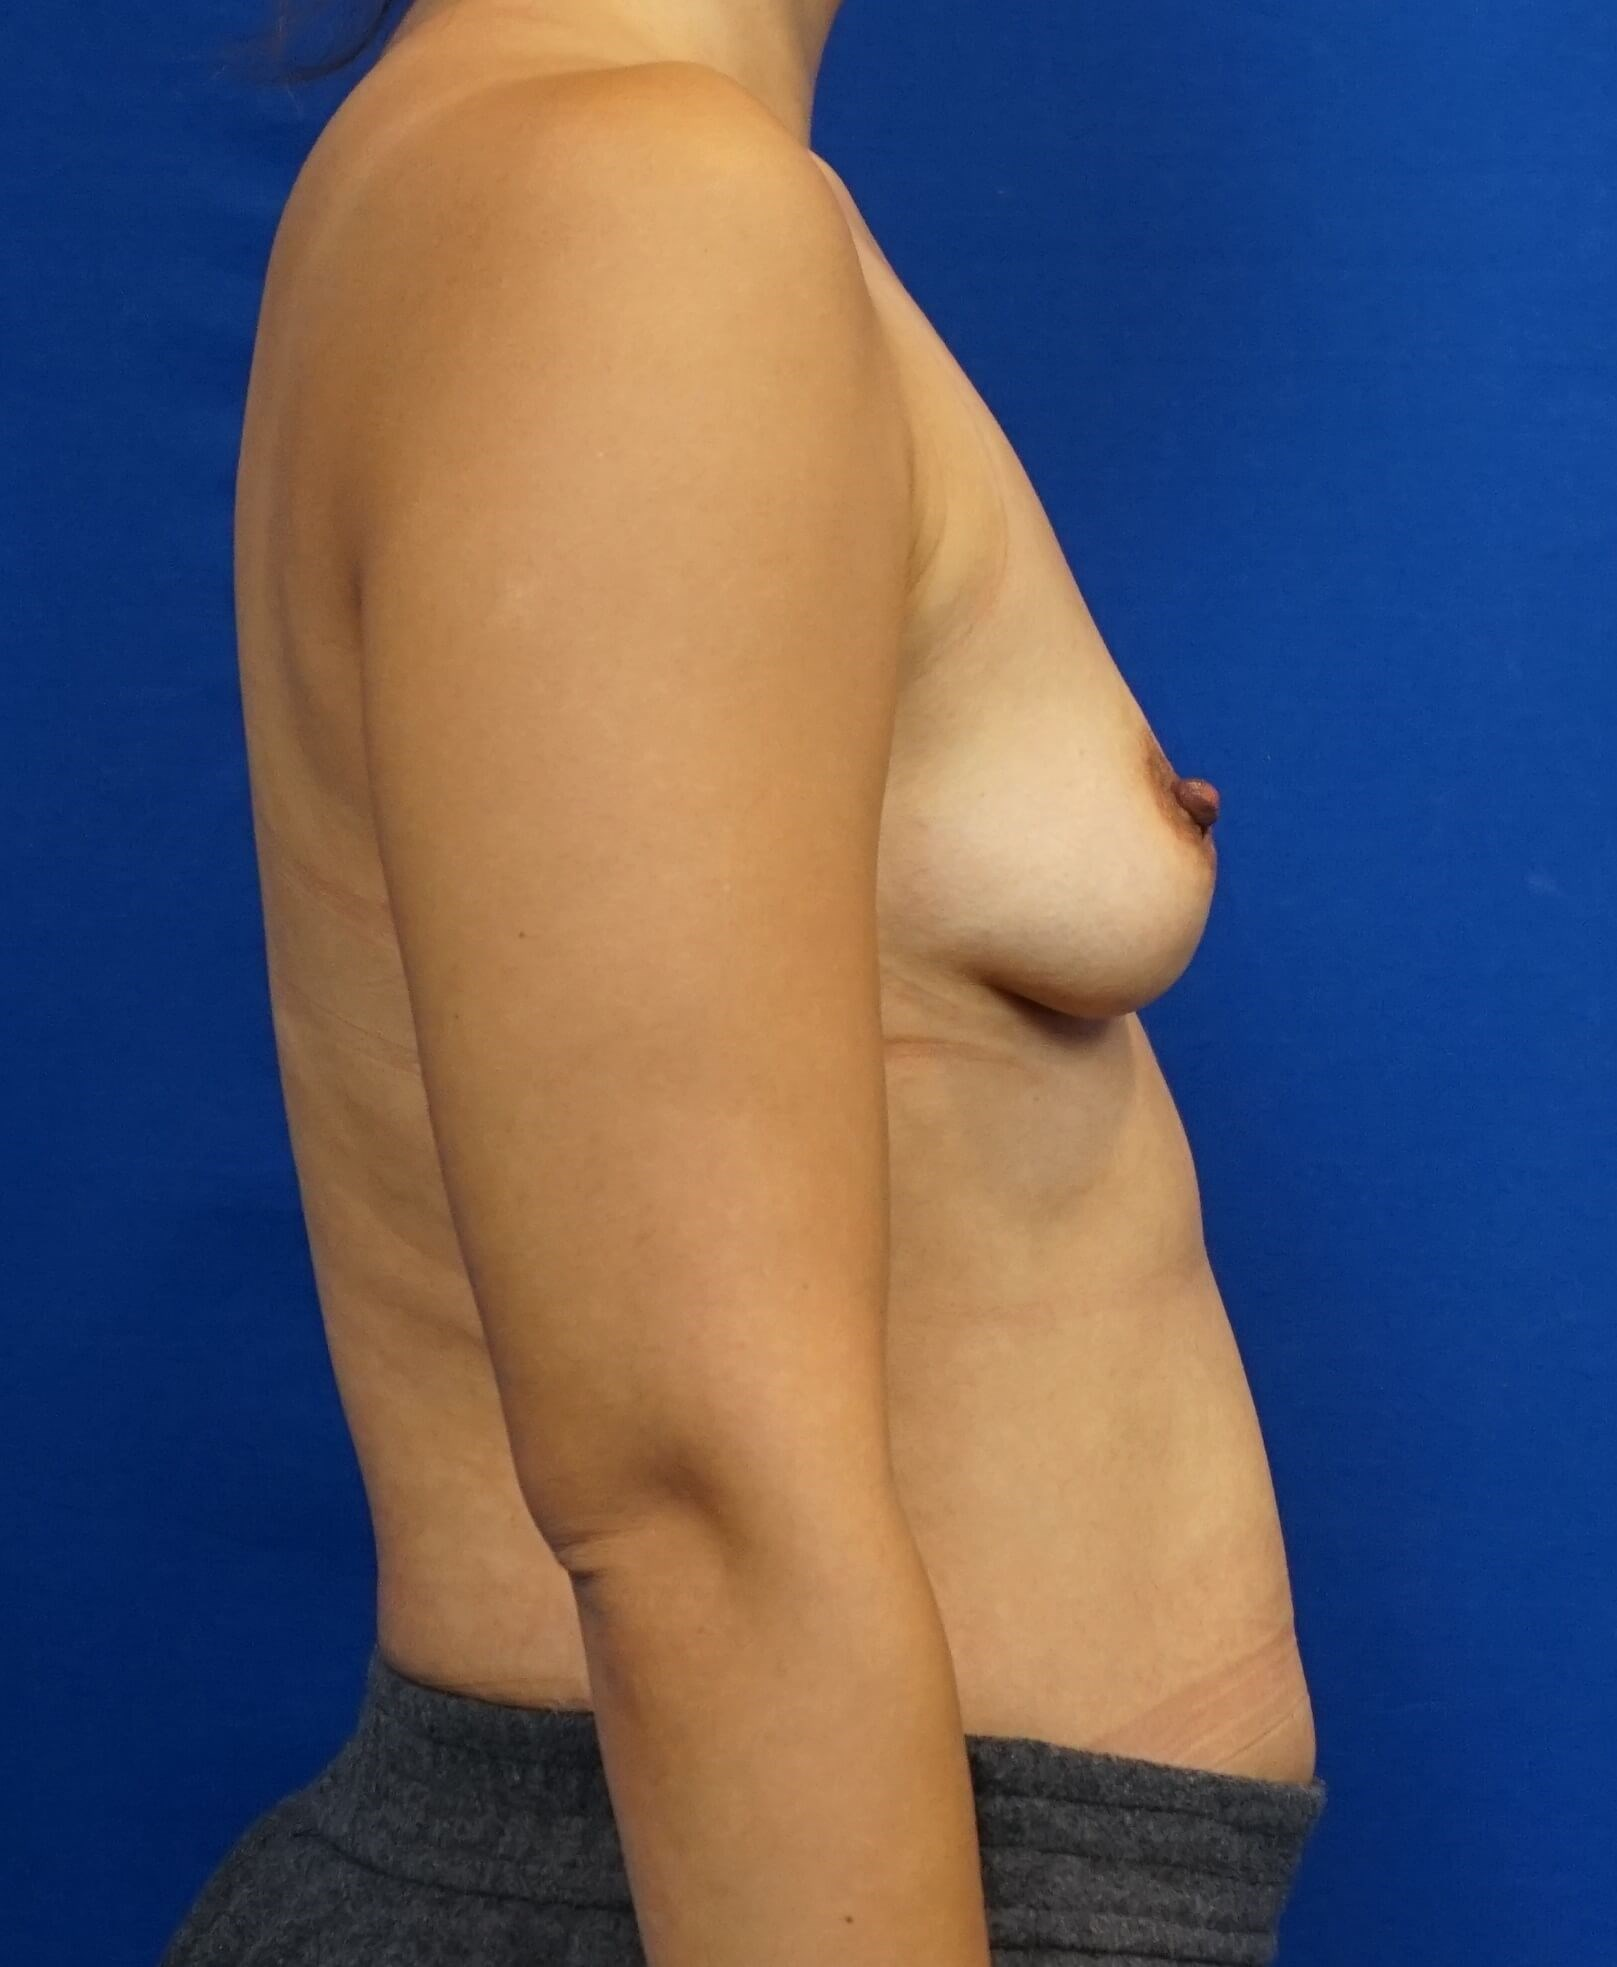 Breast Augmentation Pics Before